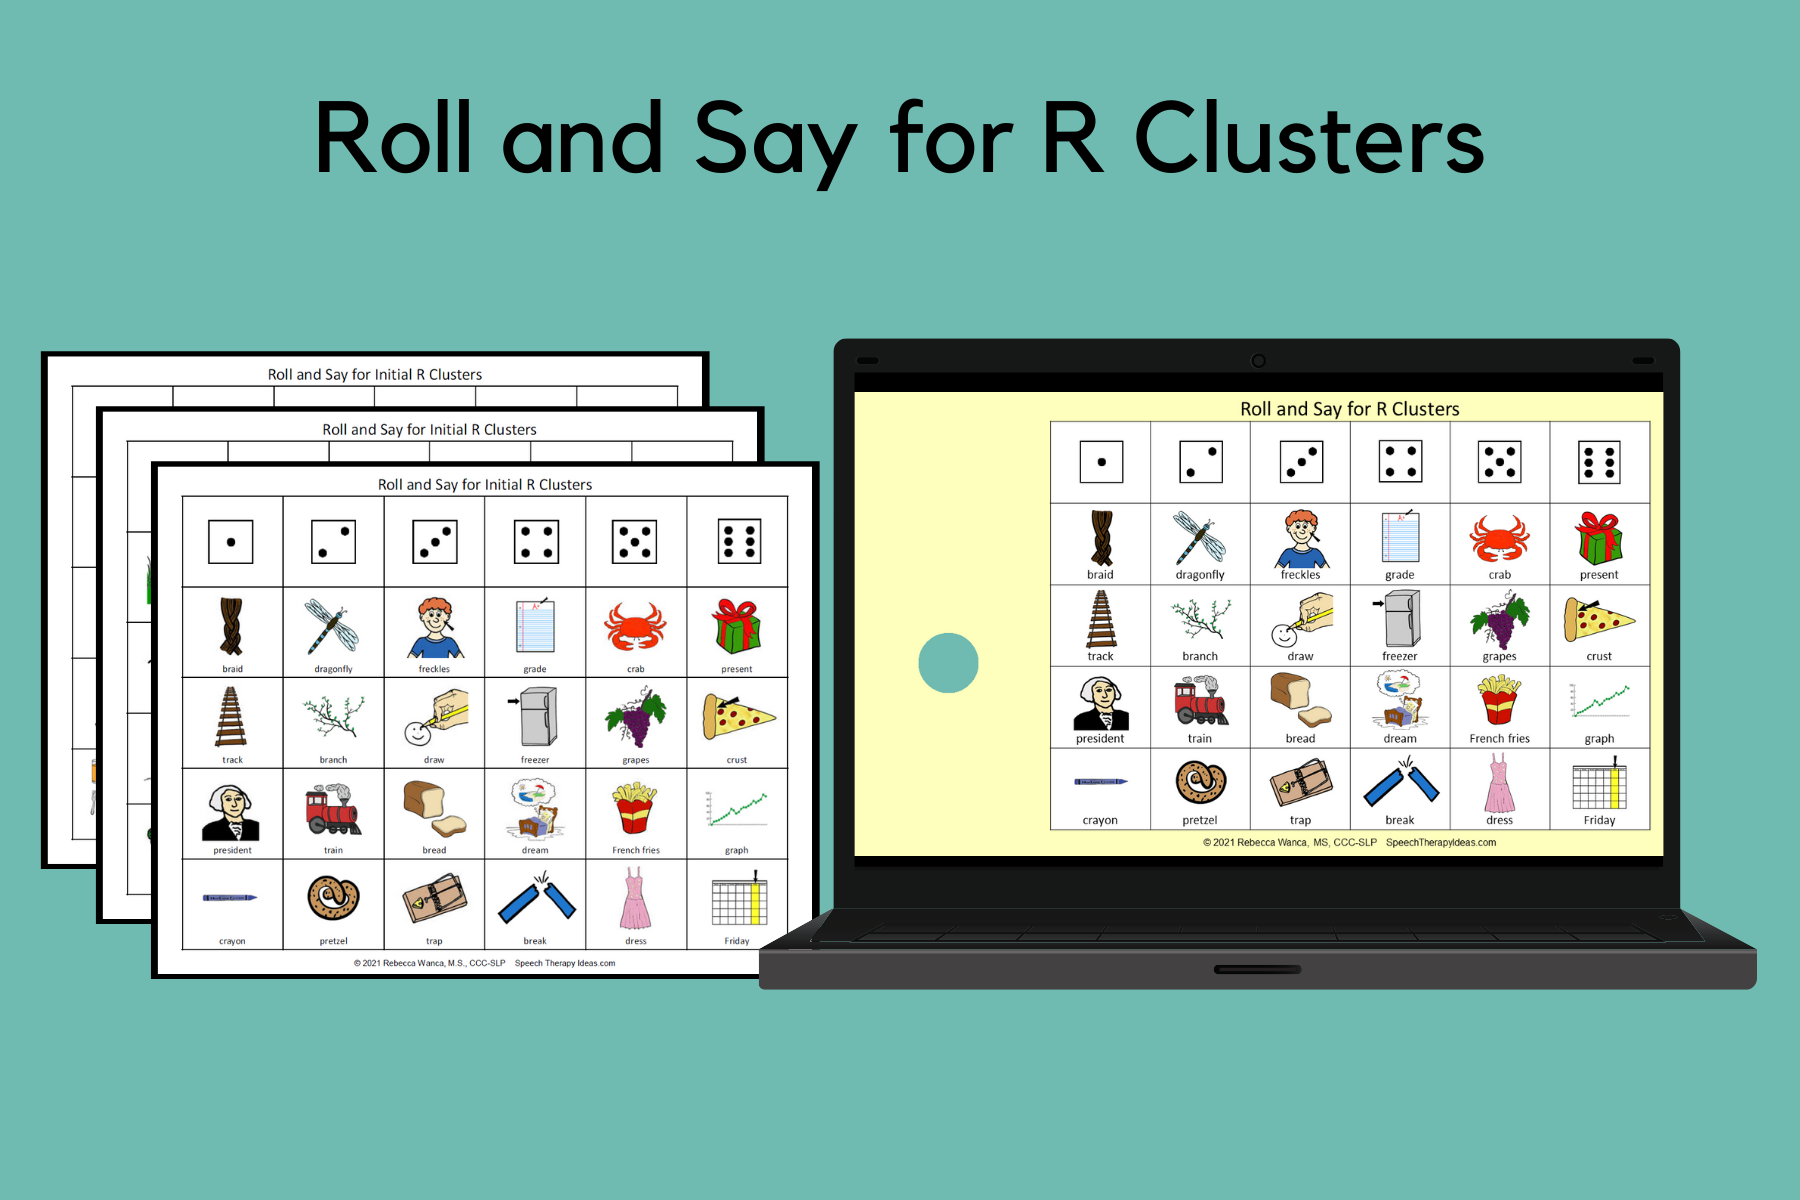 Roll and Say for R Clusters